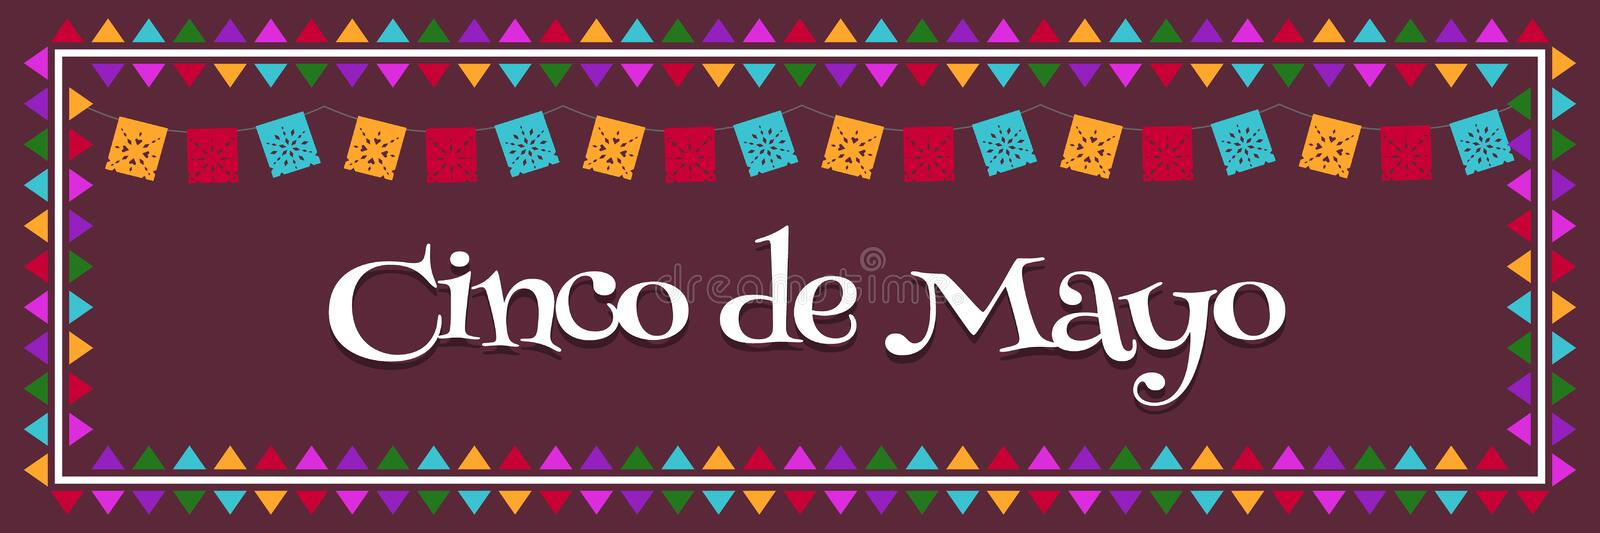 Cinco de Mayo - May 5 Mexico Federal Holiday Poster Banner with Flags Vector Illustration stock illustration